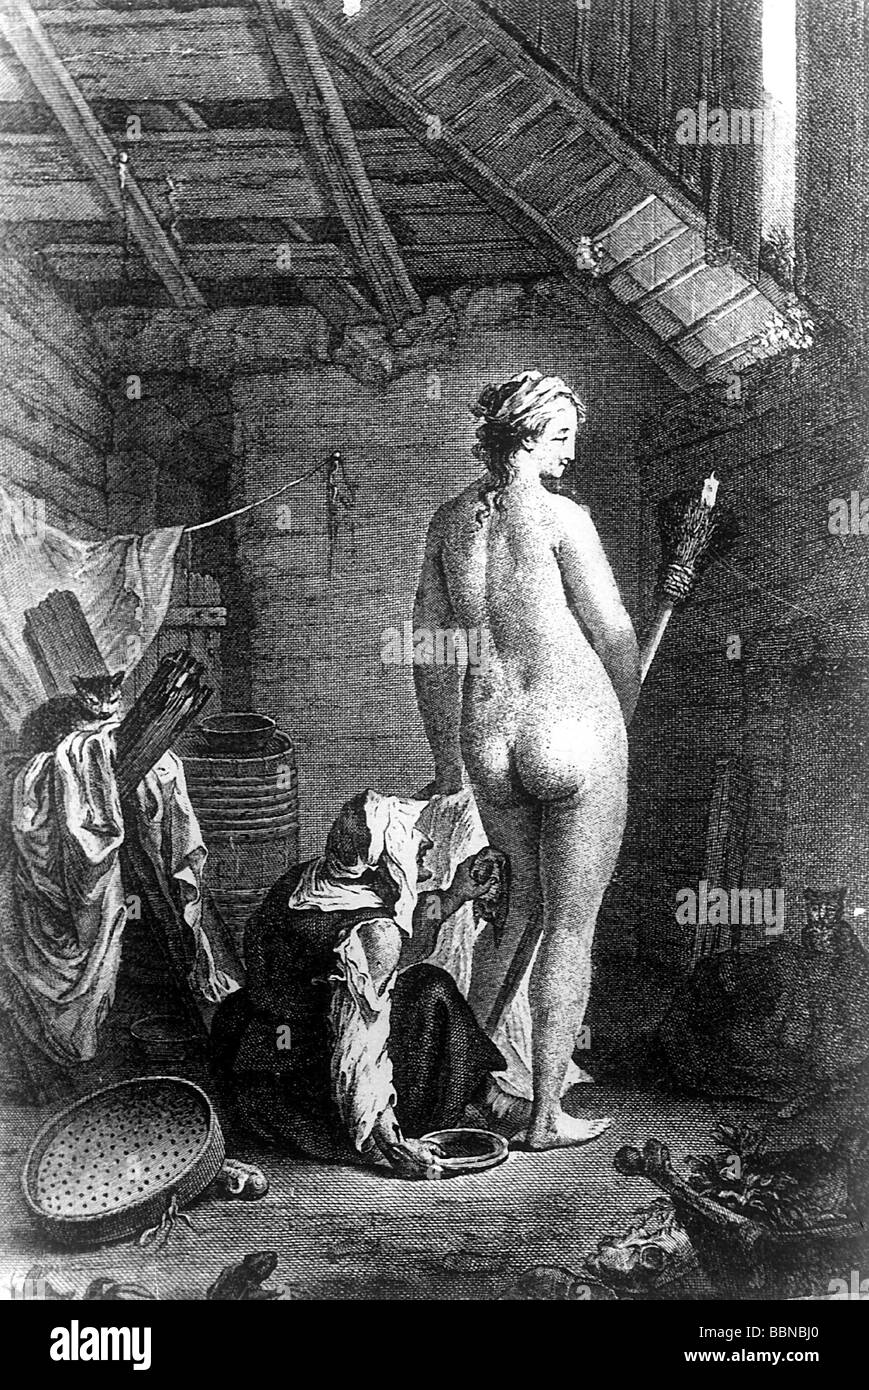 witchcraft, witches, superstition, 'Departure for the Sabbath', copper engraving, by Queverdo, Artist's - Stock Image